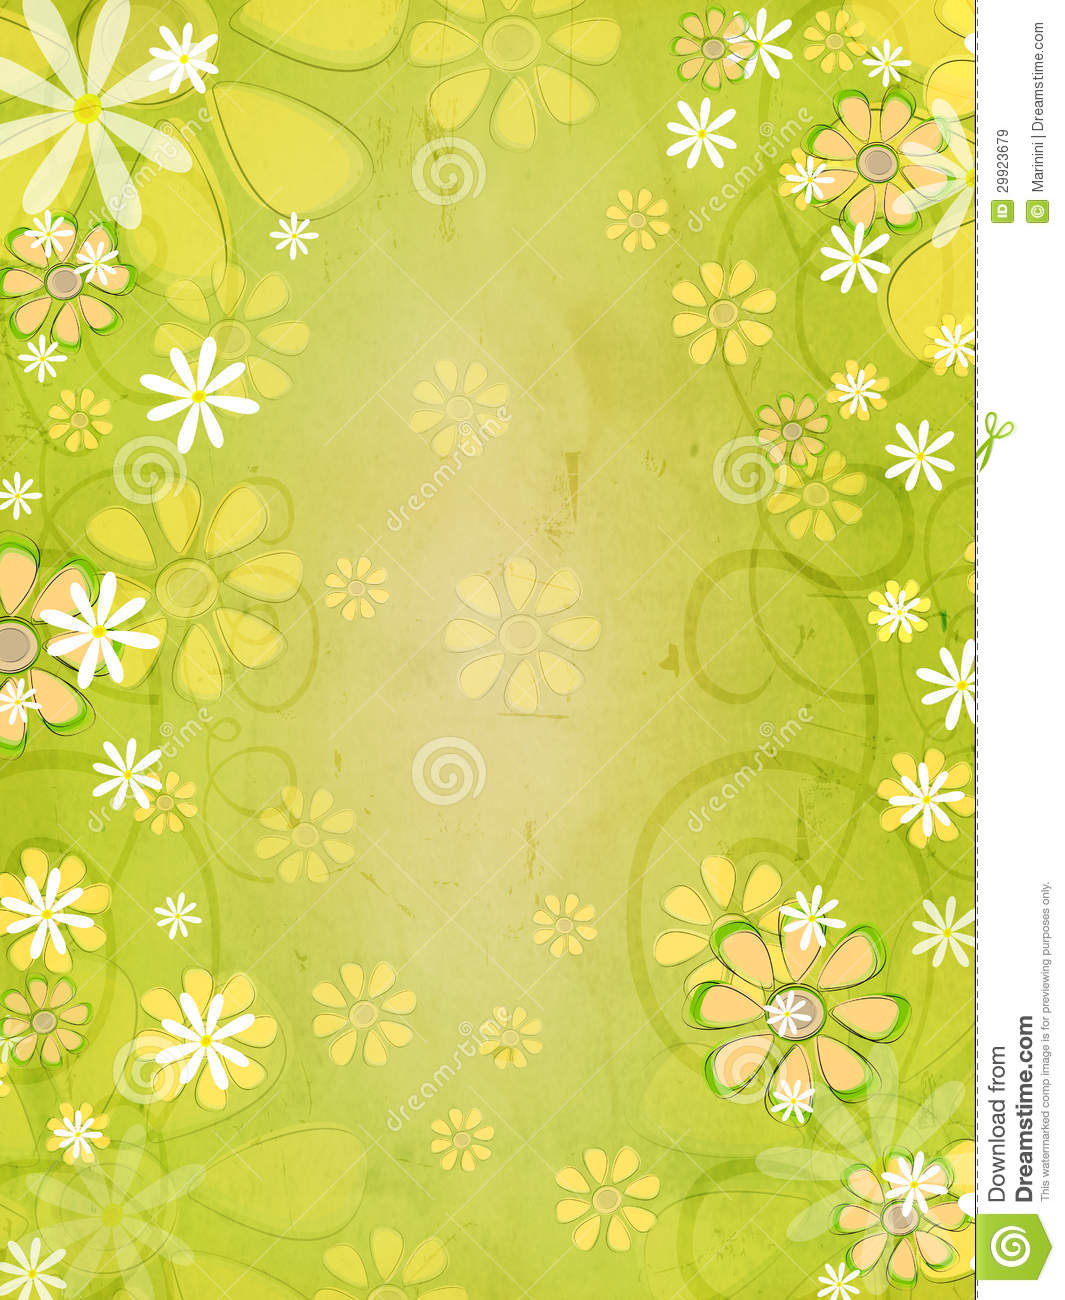 Spring White And Yellow Flowers Over Vintage Green